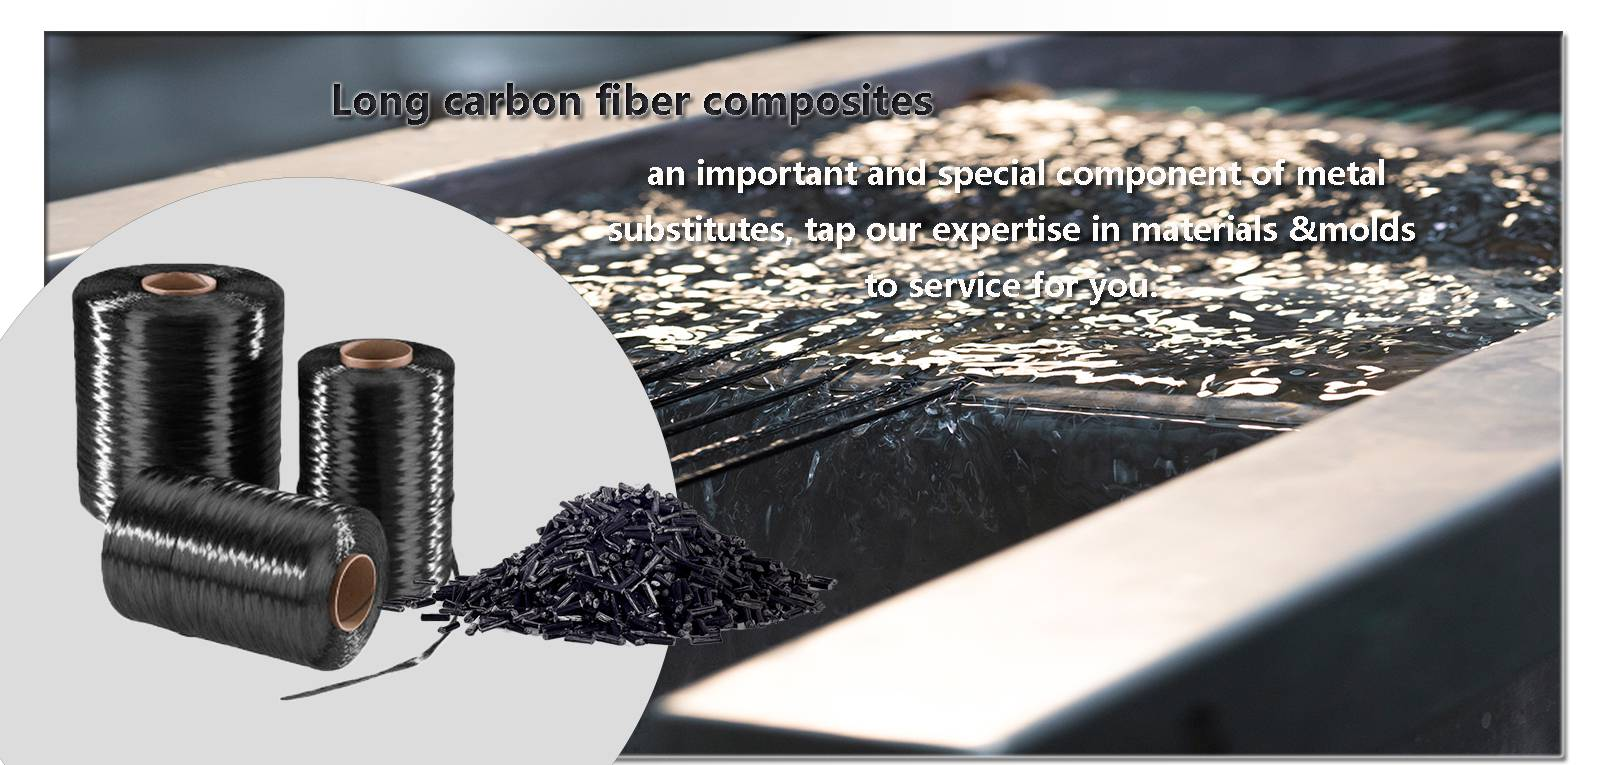 Long carbon fiber composites